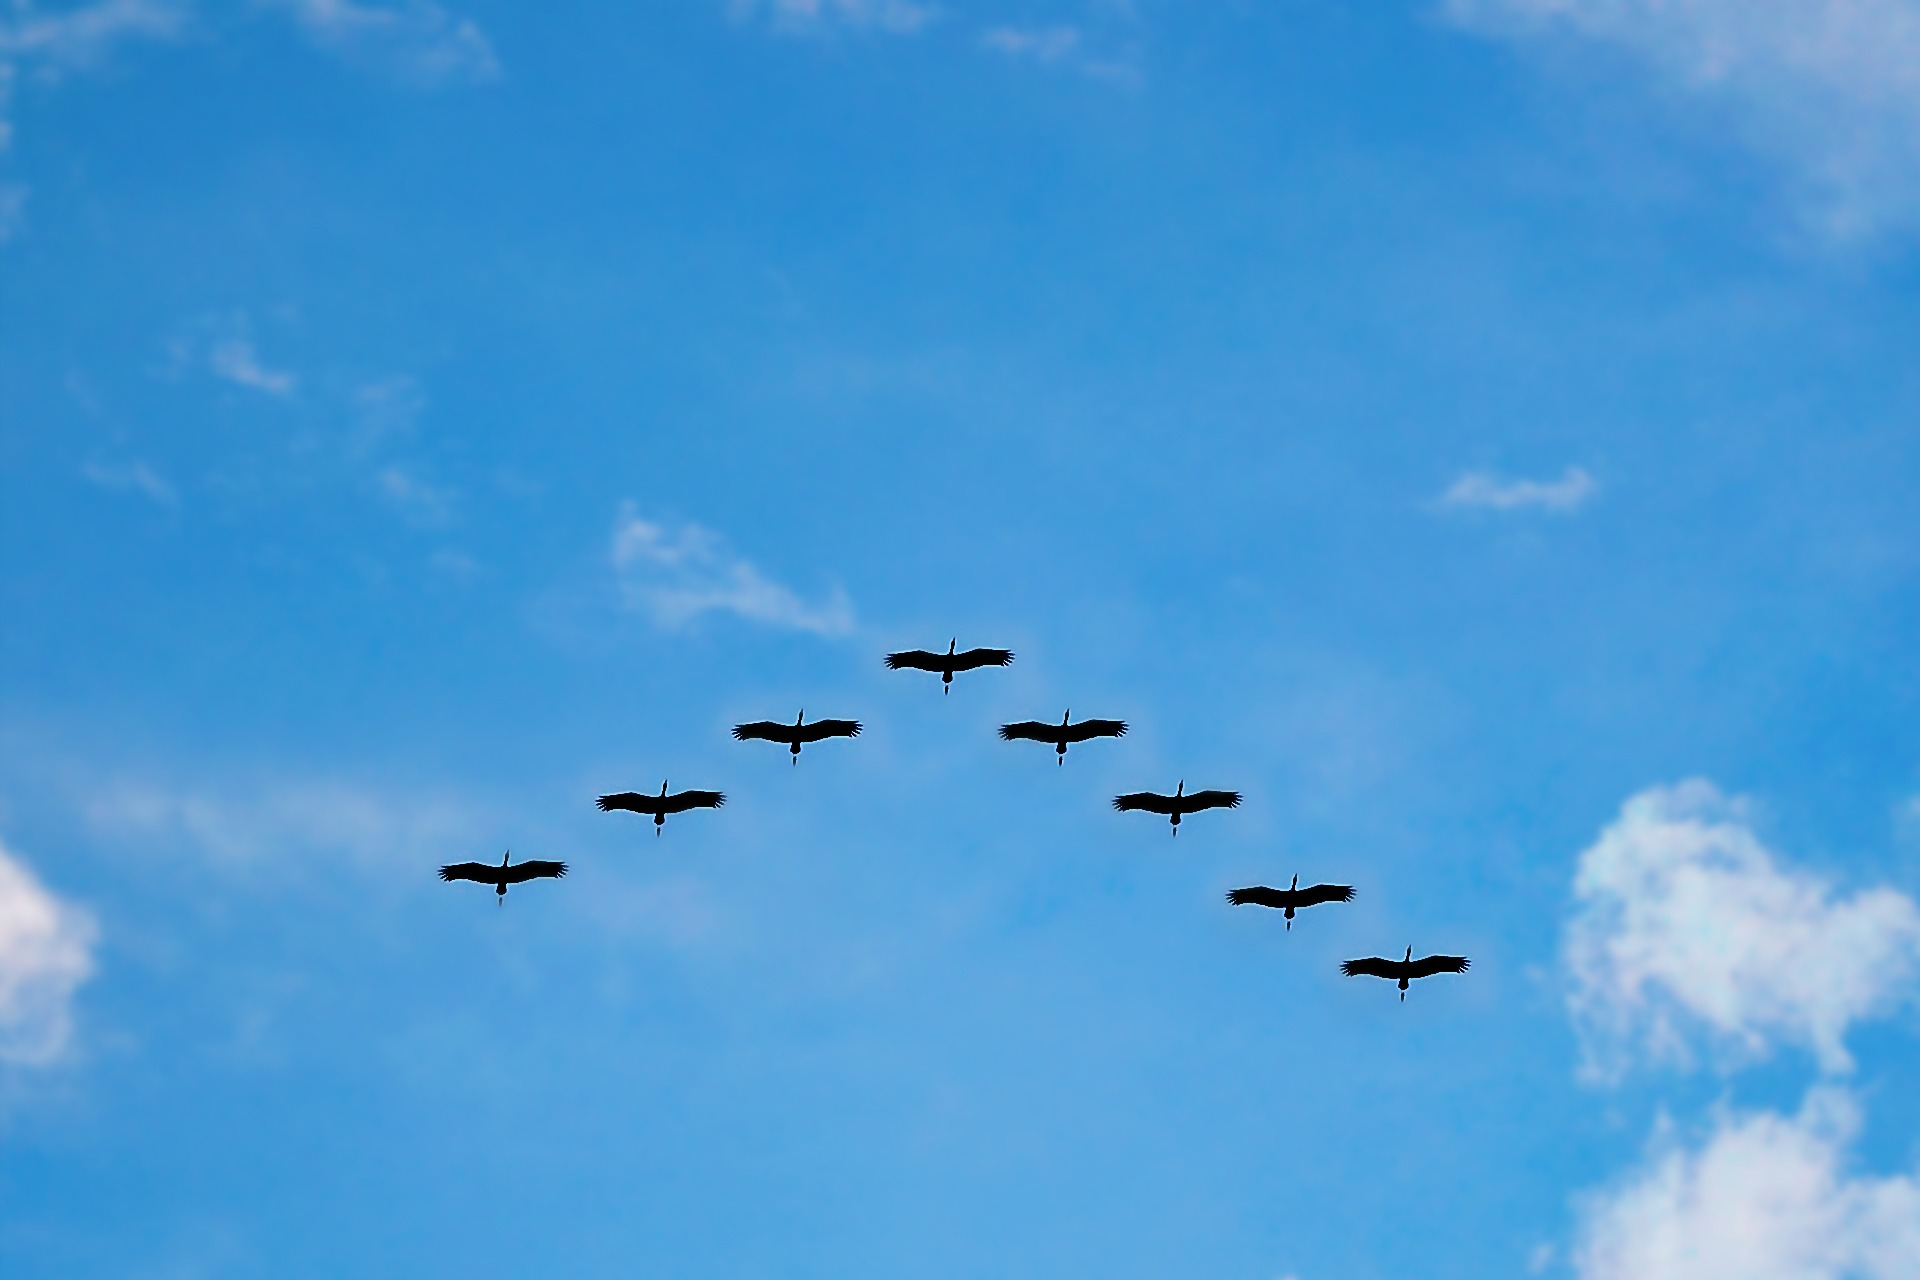 birds-high-fly-flying-migrating-62667.jpeg